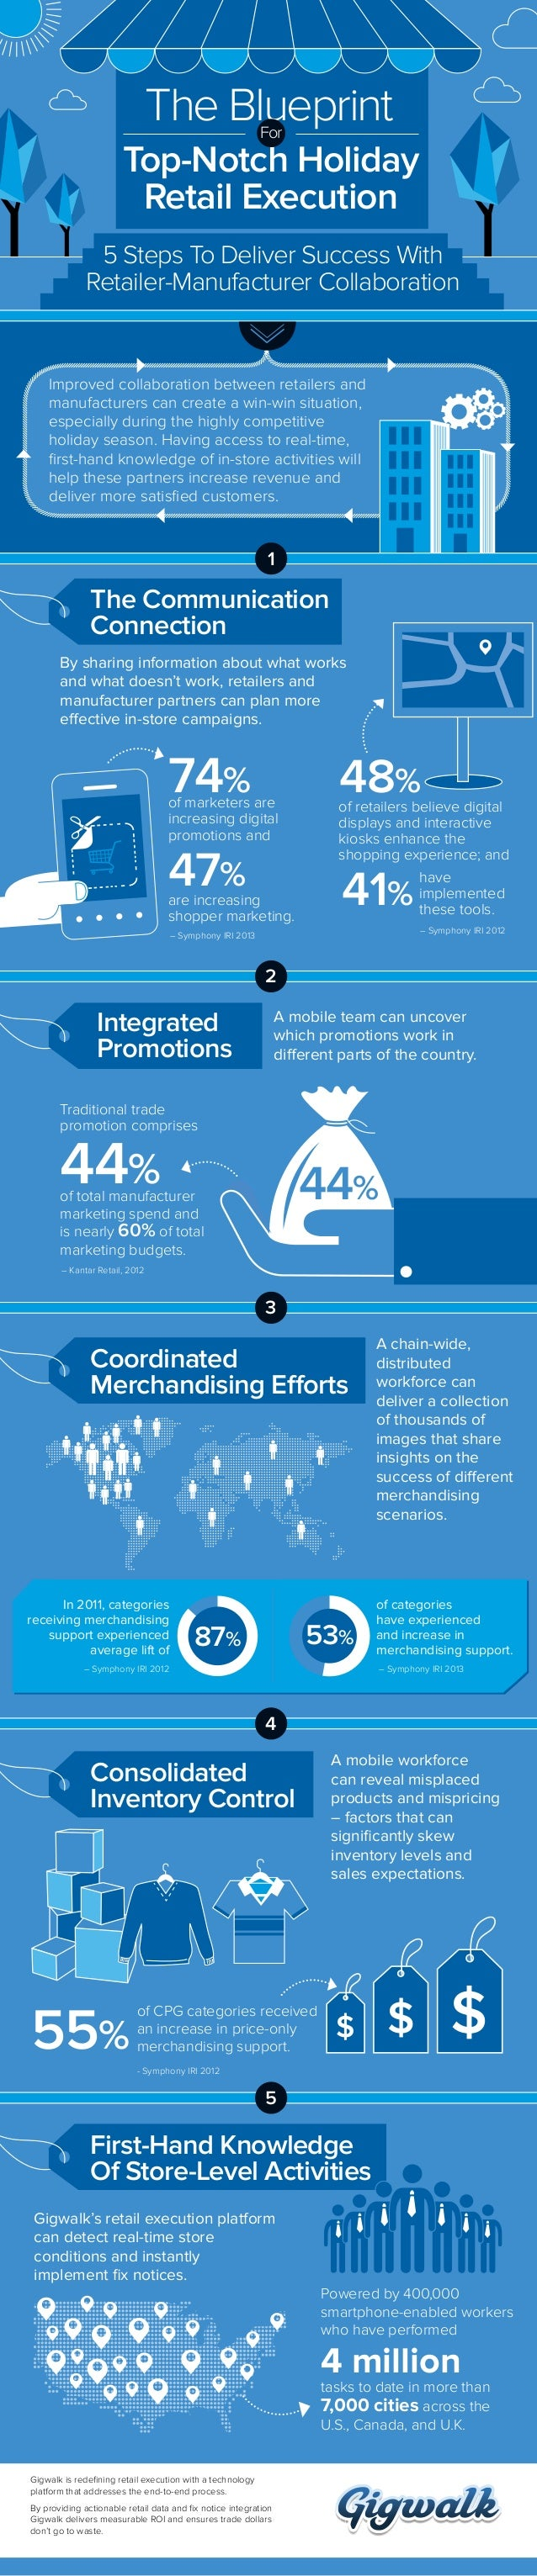 The Blueprint For  Top-Notch Holiday Retail Execution 5 Steps To Deliver Success With Retailer-Manufacturer Collaboration ...